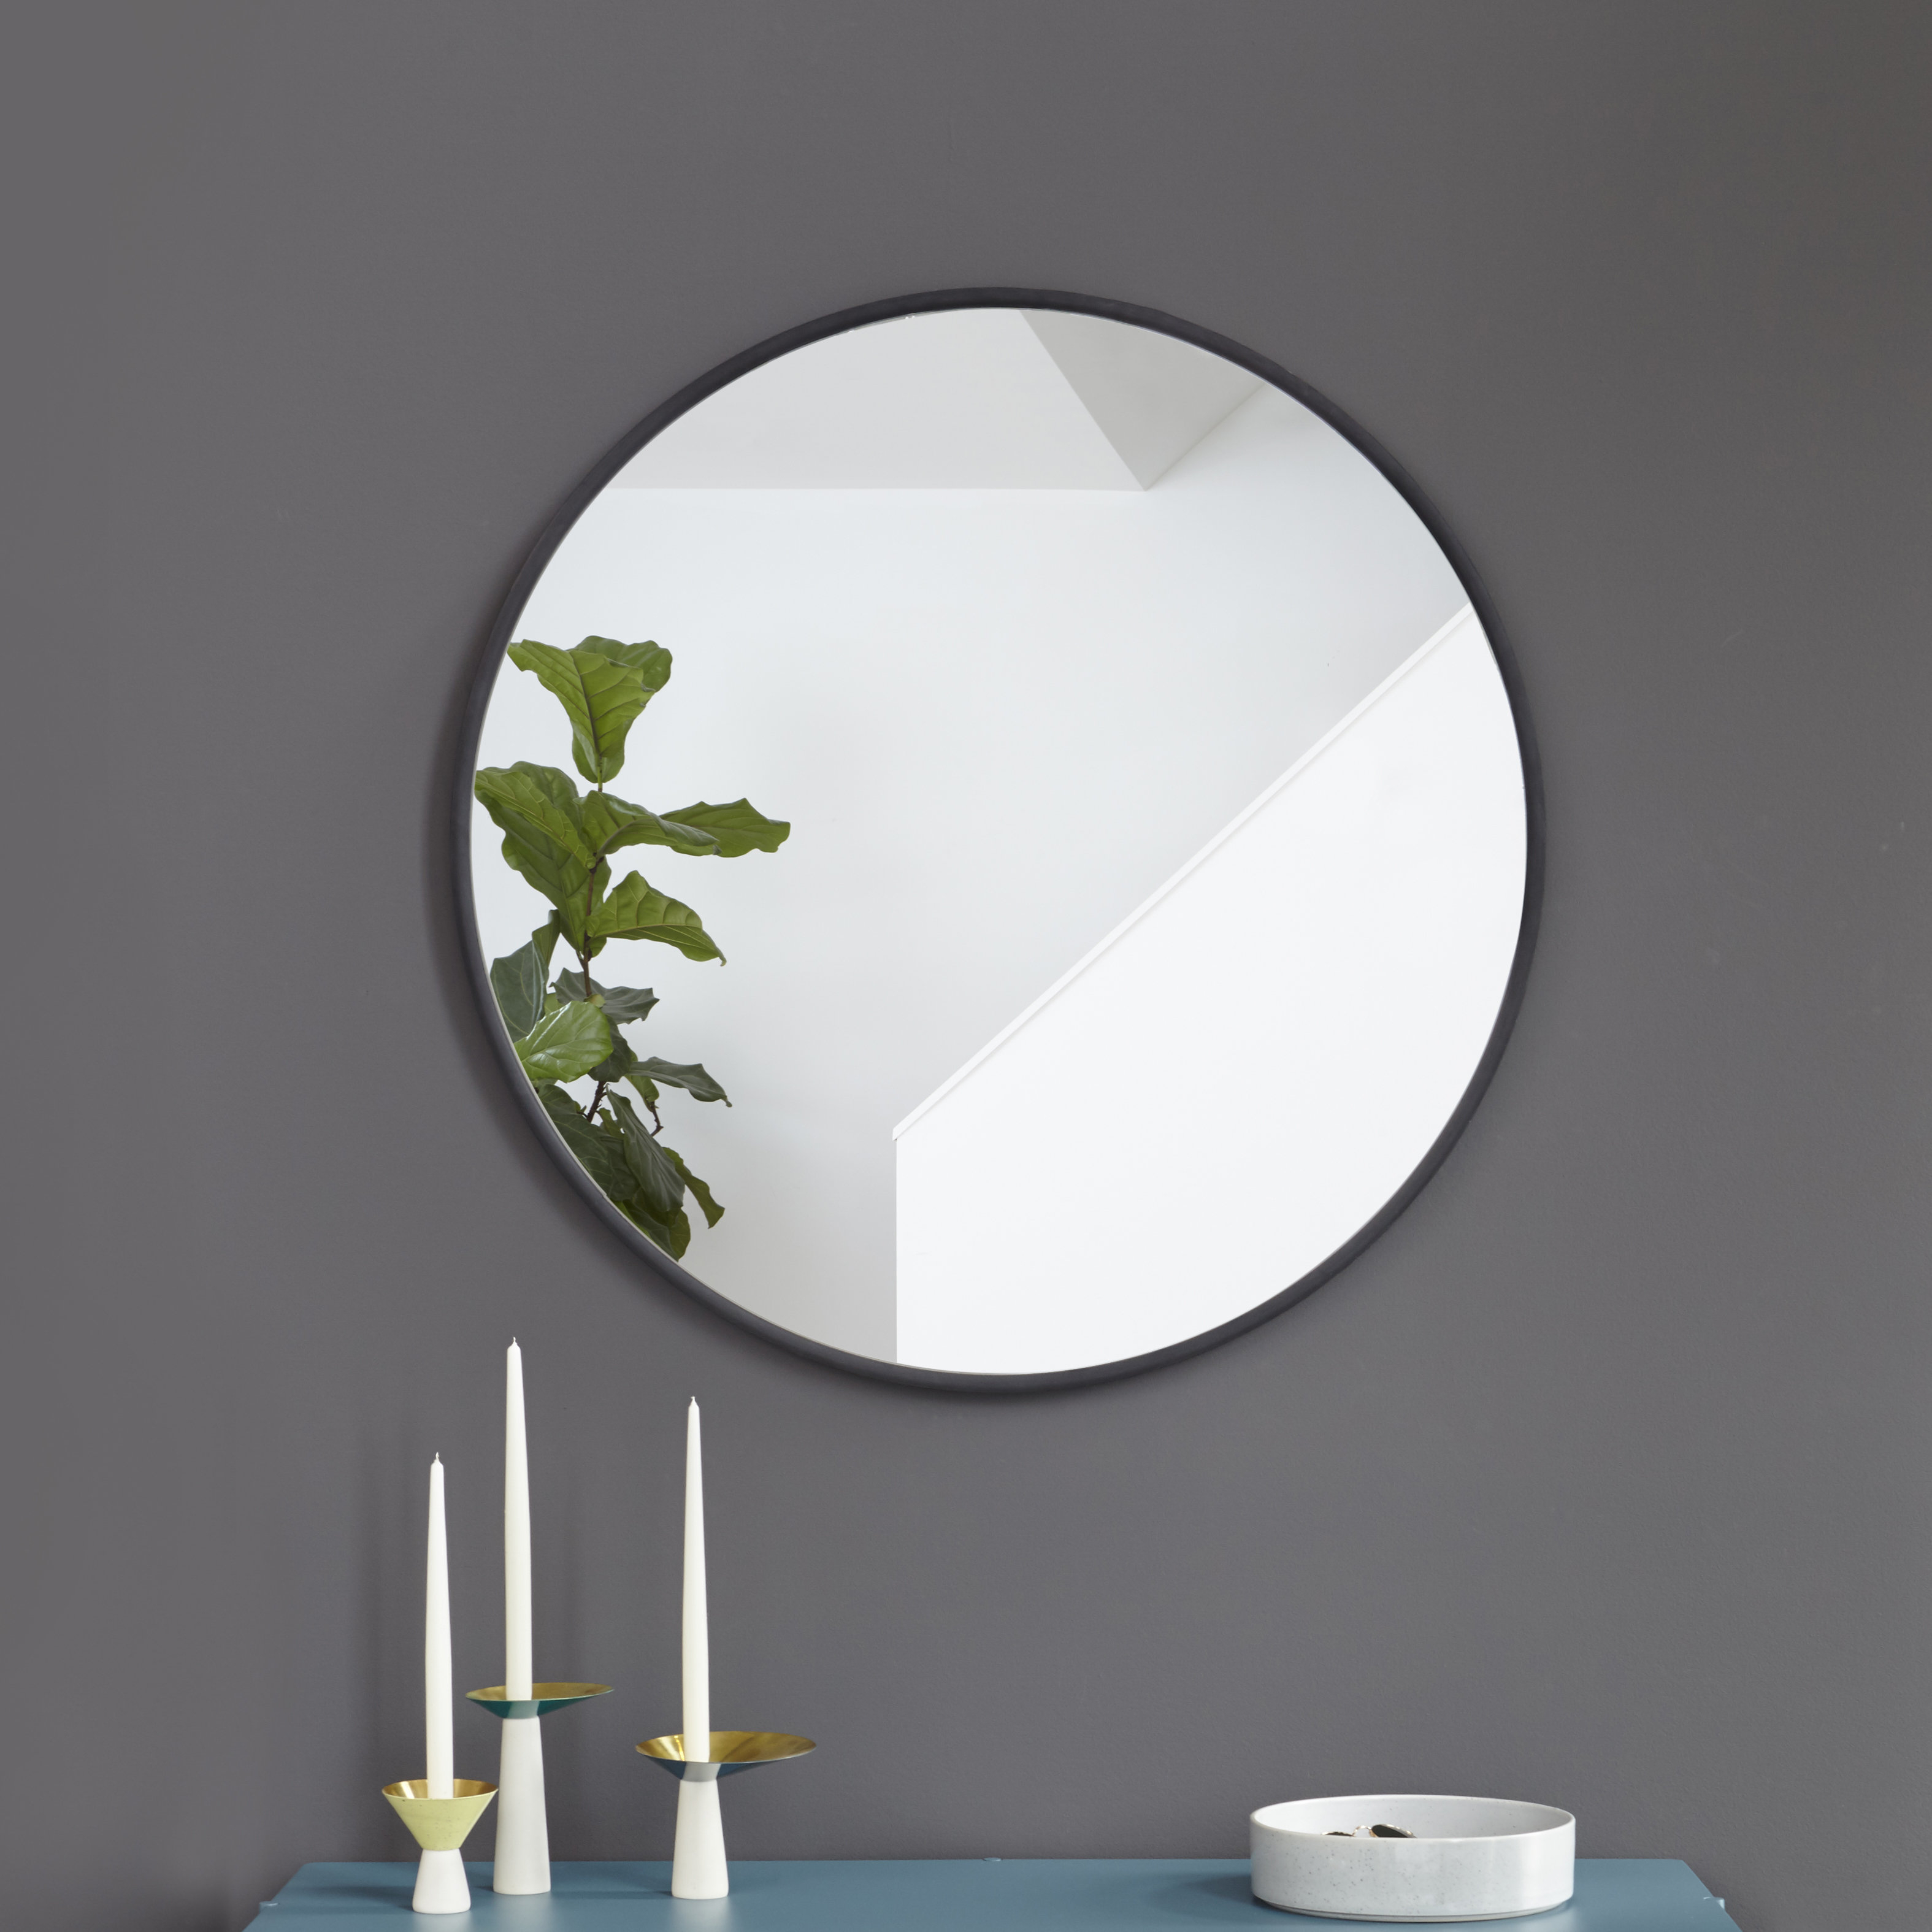 Umbra Hub Modern And Contemporary Accent Mirror Regarding Hub Modern And Contemporary Accent Mirrors (Photo 13 of 20)